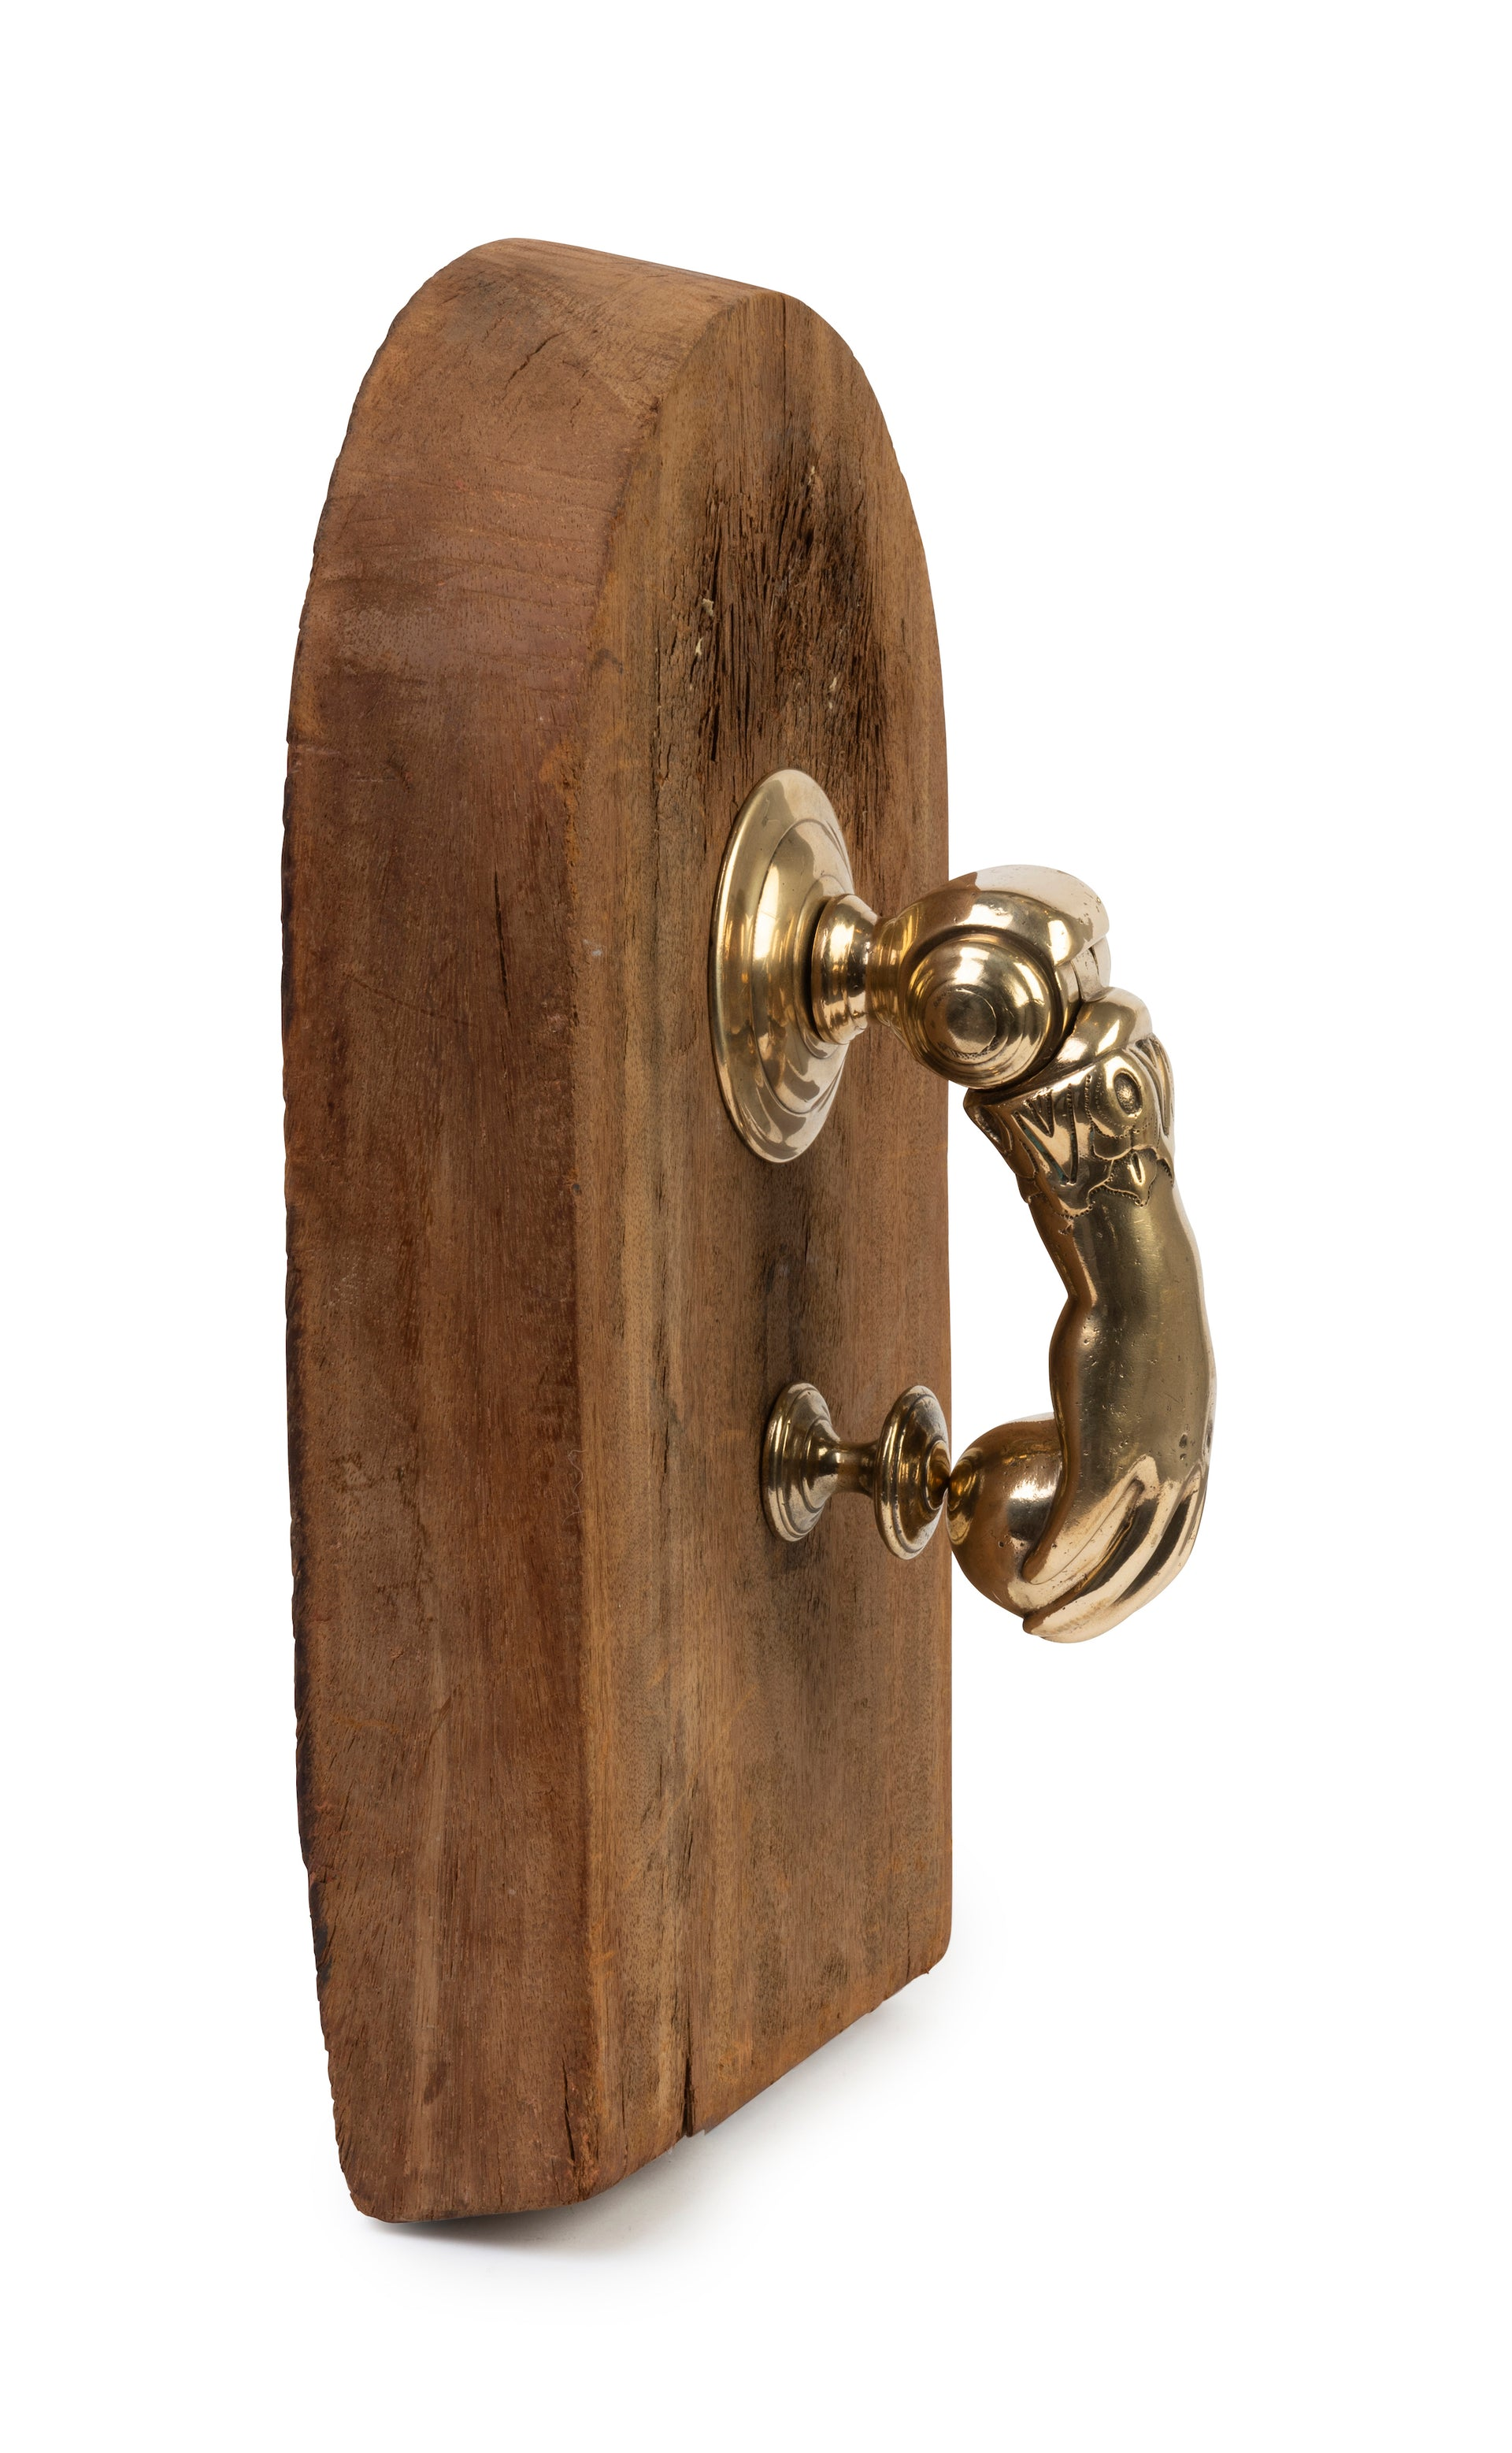 An impressive polished brass door knocker in the form of a hand, French 19th Century